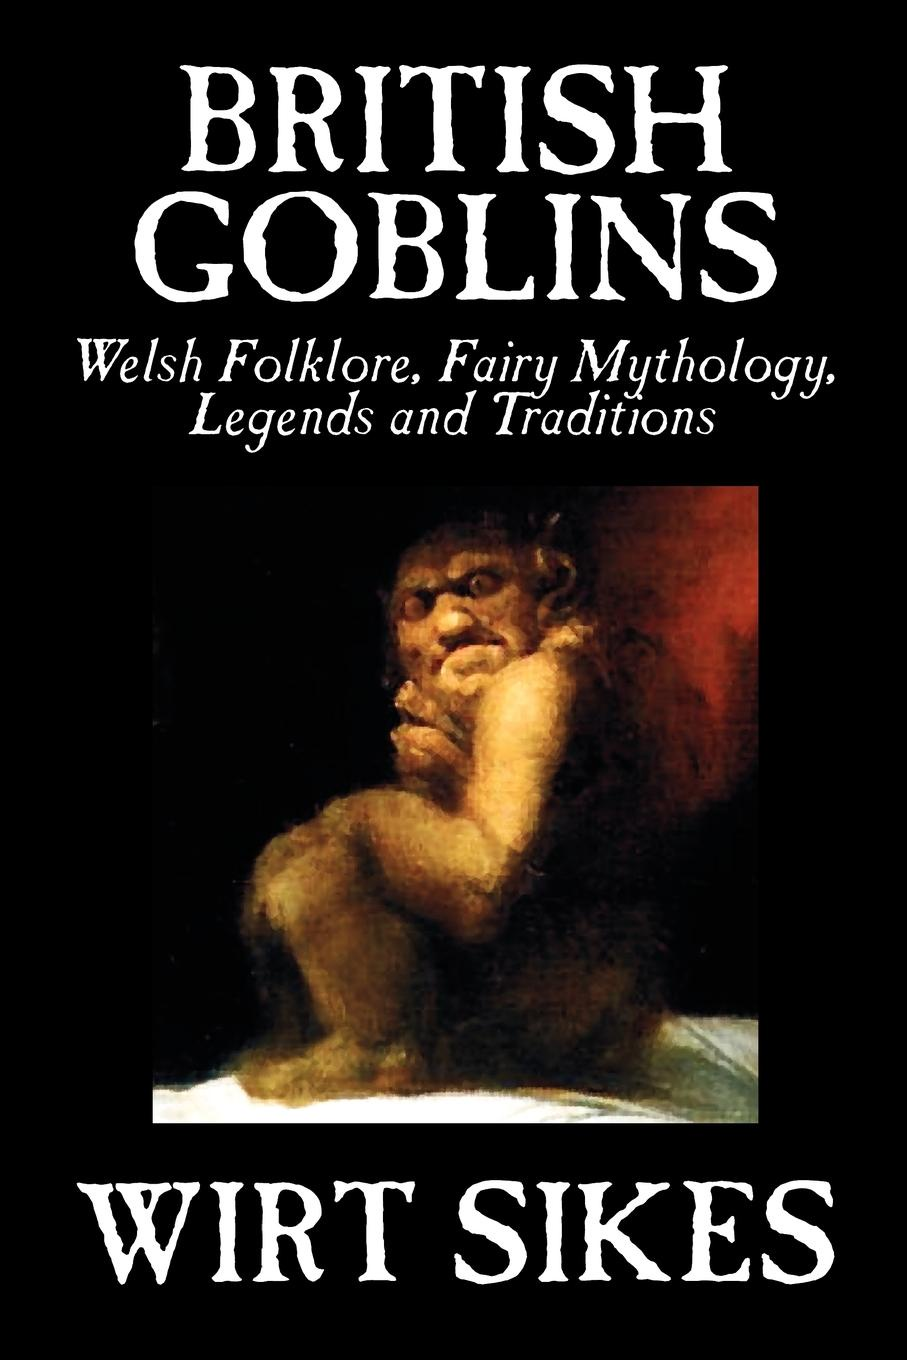 Wirt Sikes British Goblins. Welsh Folklore, Fairy Mythology, Legends and Traditions by Wilt Sikes, Fiction, Fairy Tales, Folk Tales, Legends & Mythology graham watkins welsh legends and myths